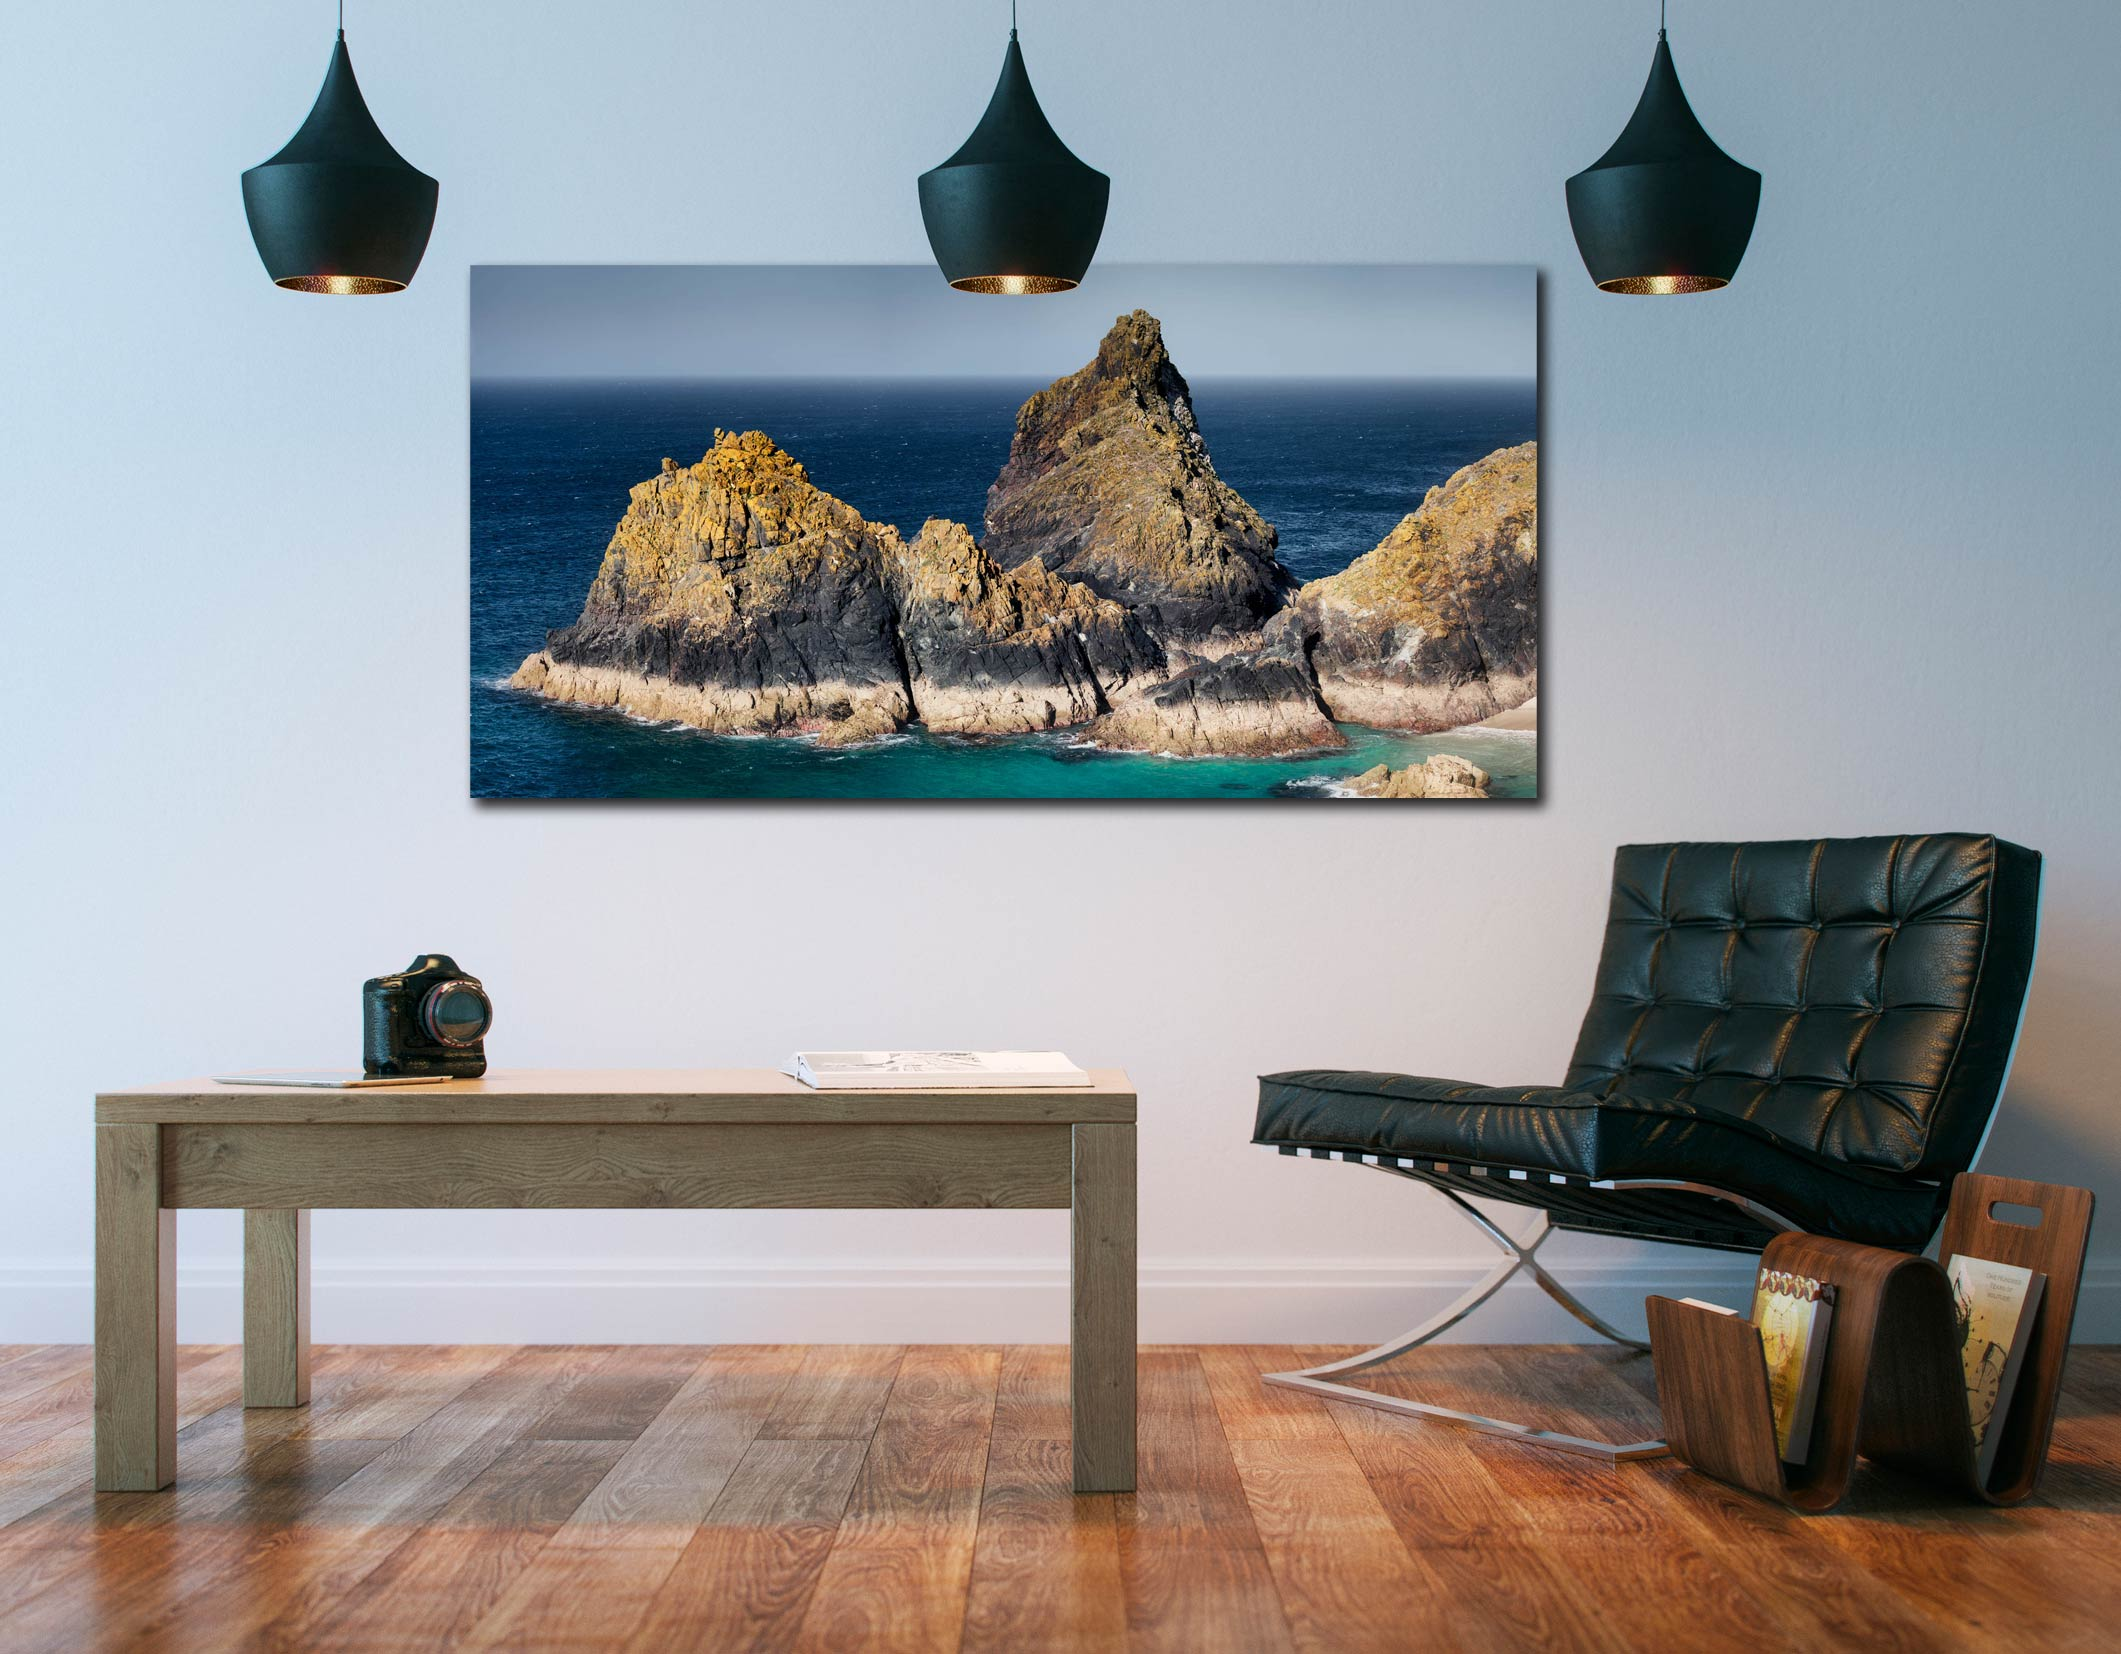 The Bishop Rock at Kynance - Print Aluminium Backing With Acrylic Glazing on Wall